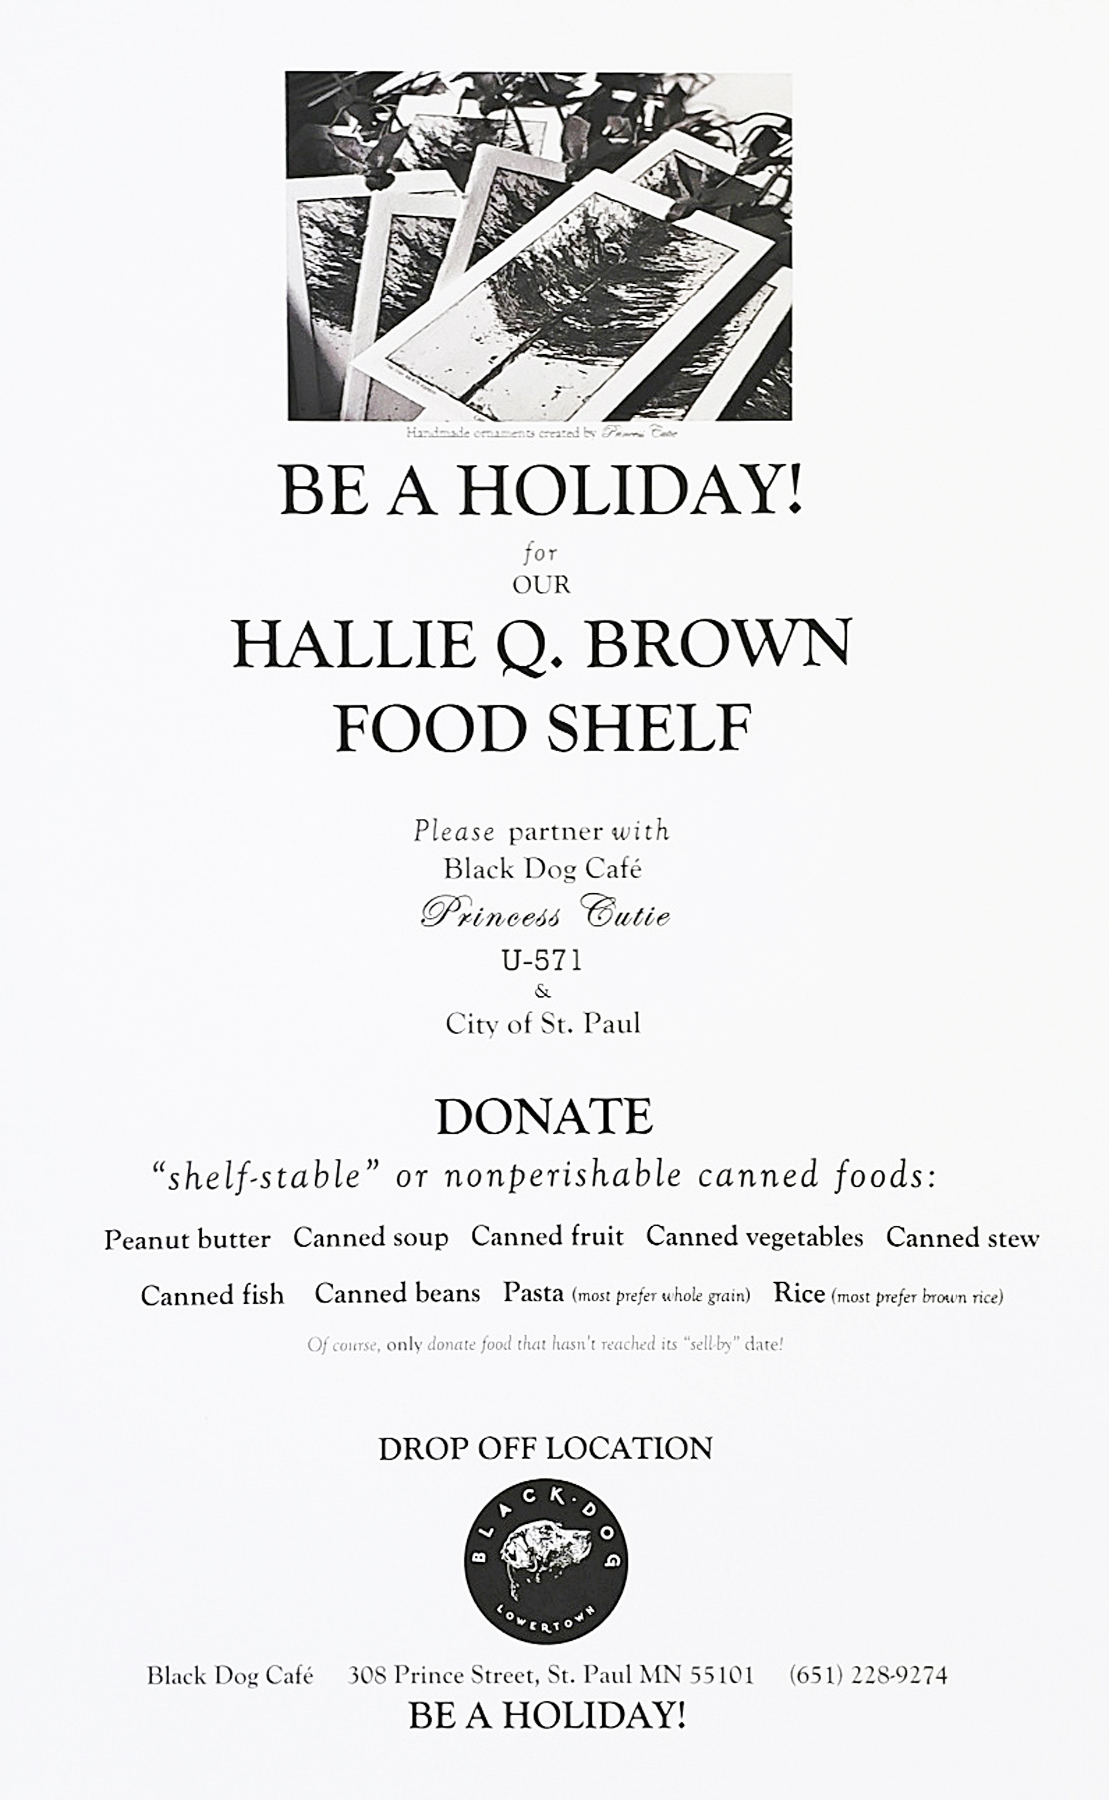 BEAHOLIDAY_HALLIEQBROWN_POSTER_WP